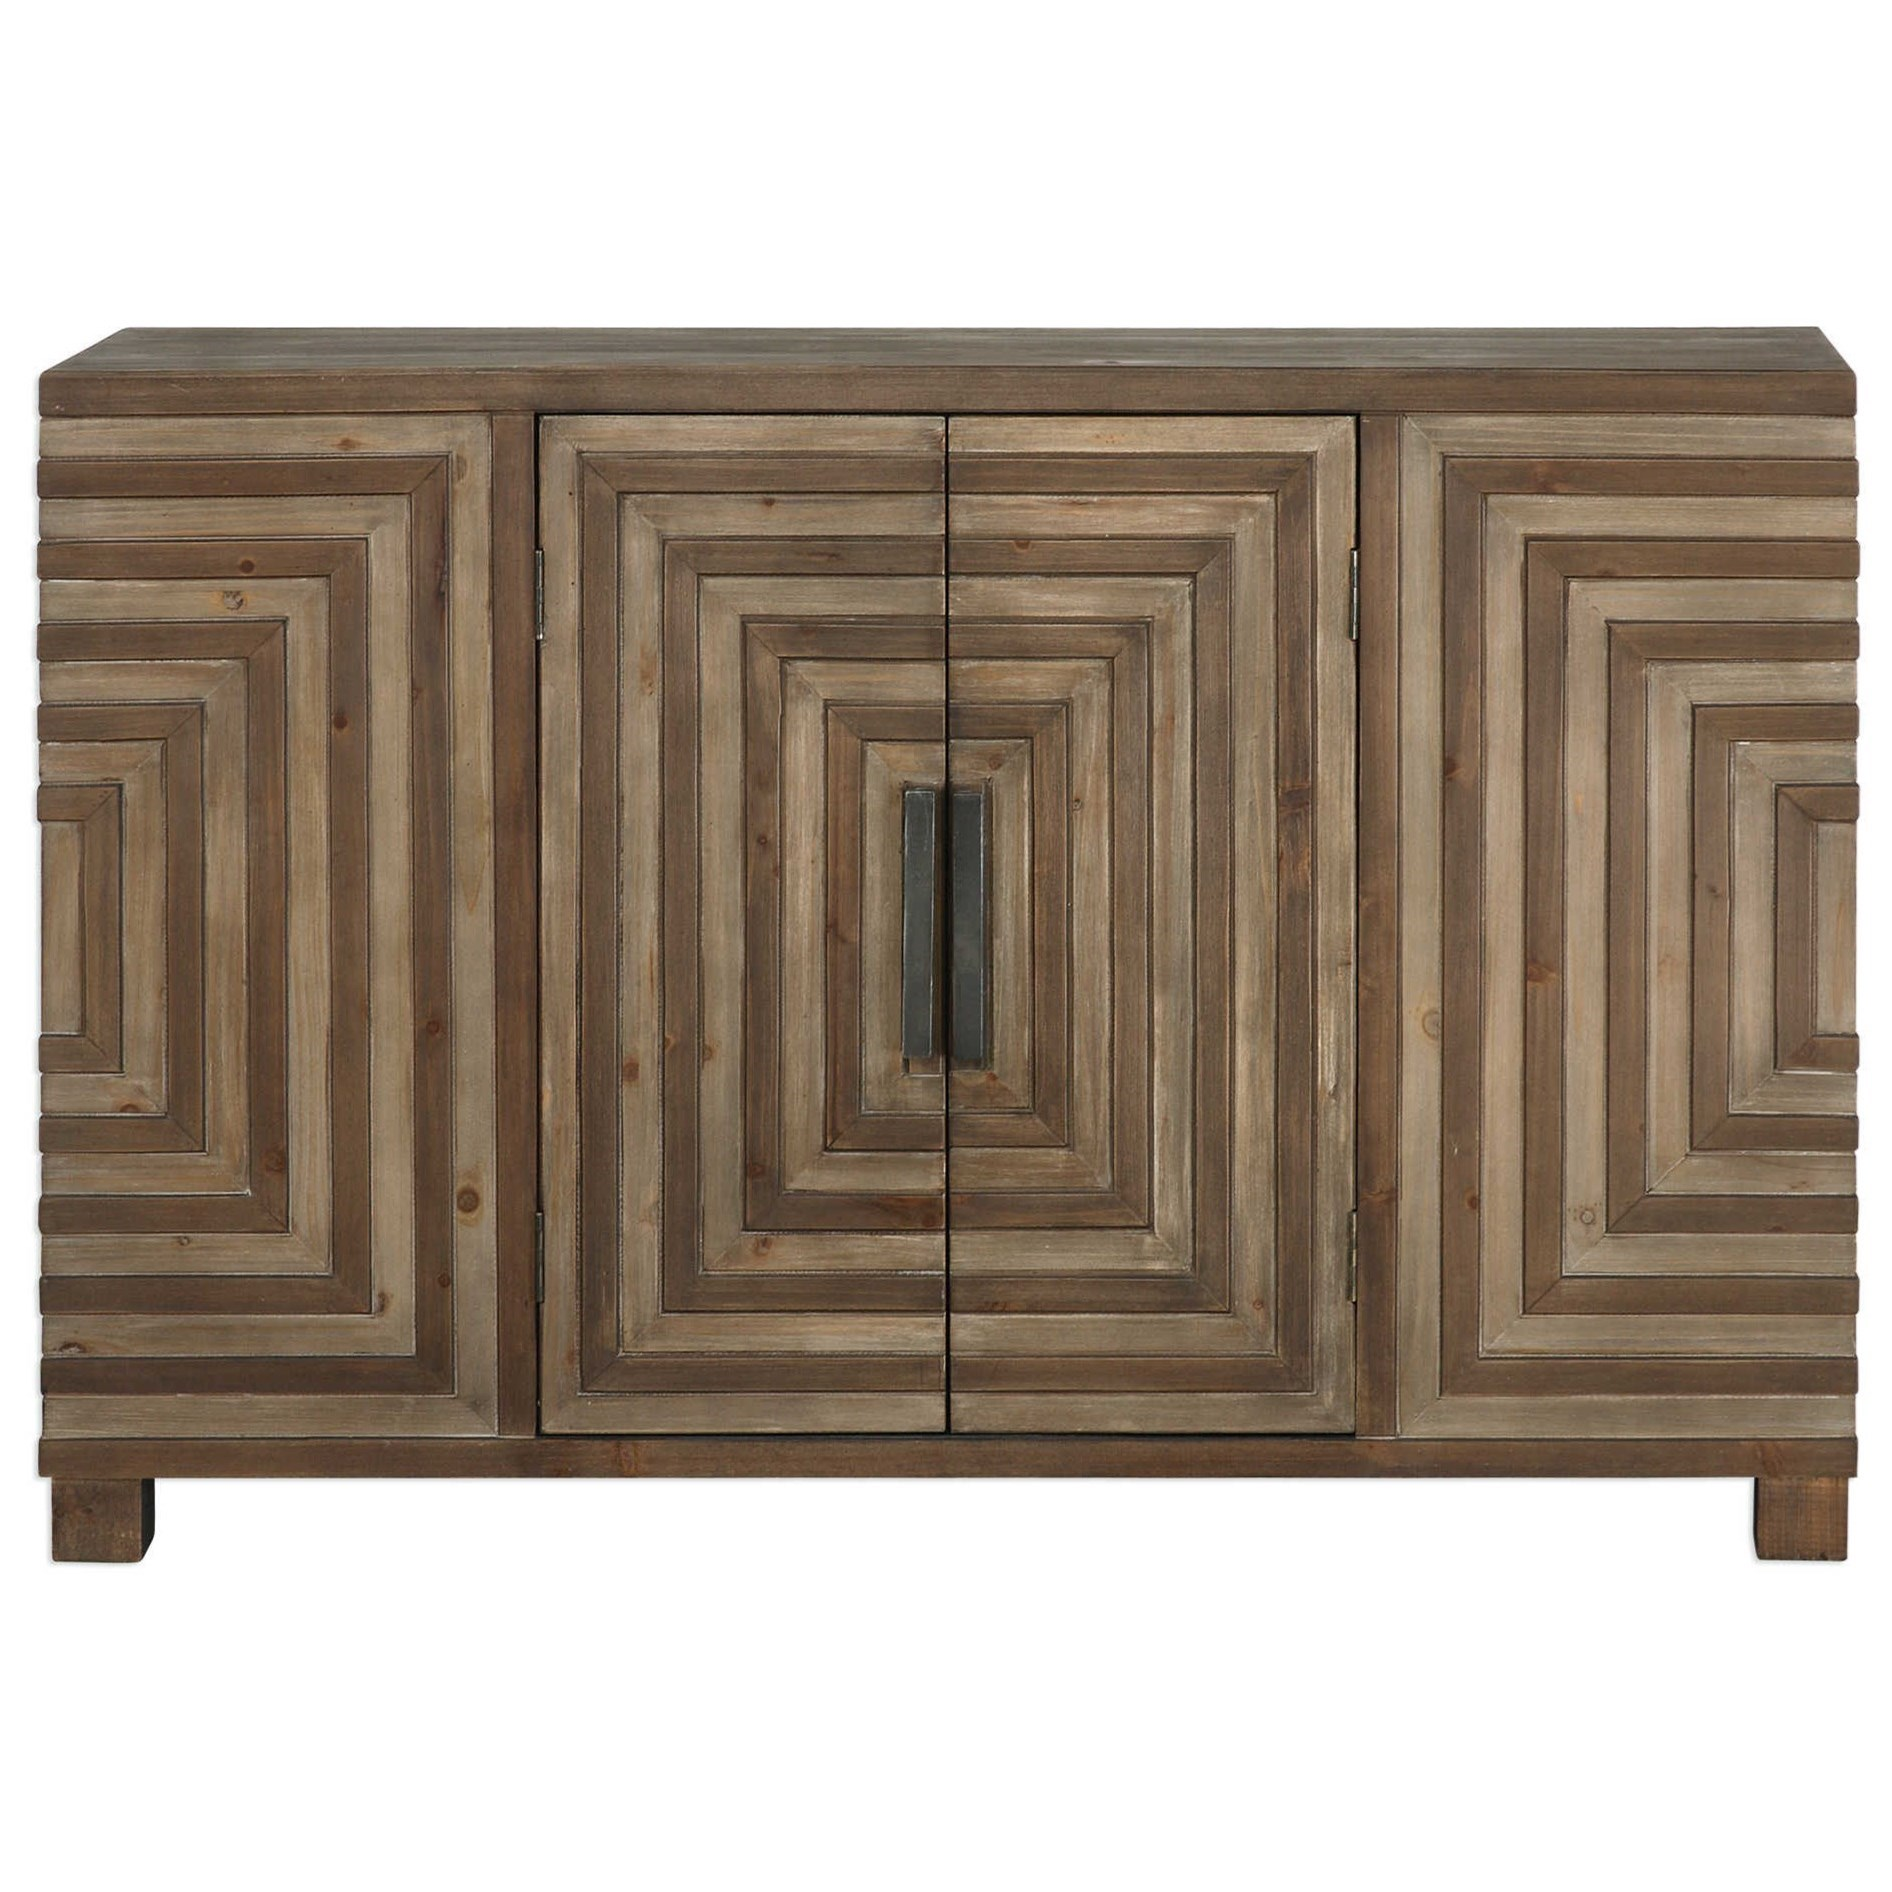 Accent Furniture - Occasional Tables Layton Geometric Console Cabinet by Uttermost at Reid's Furniture